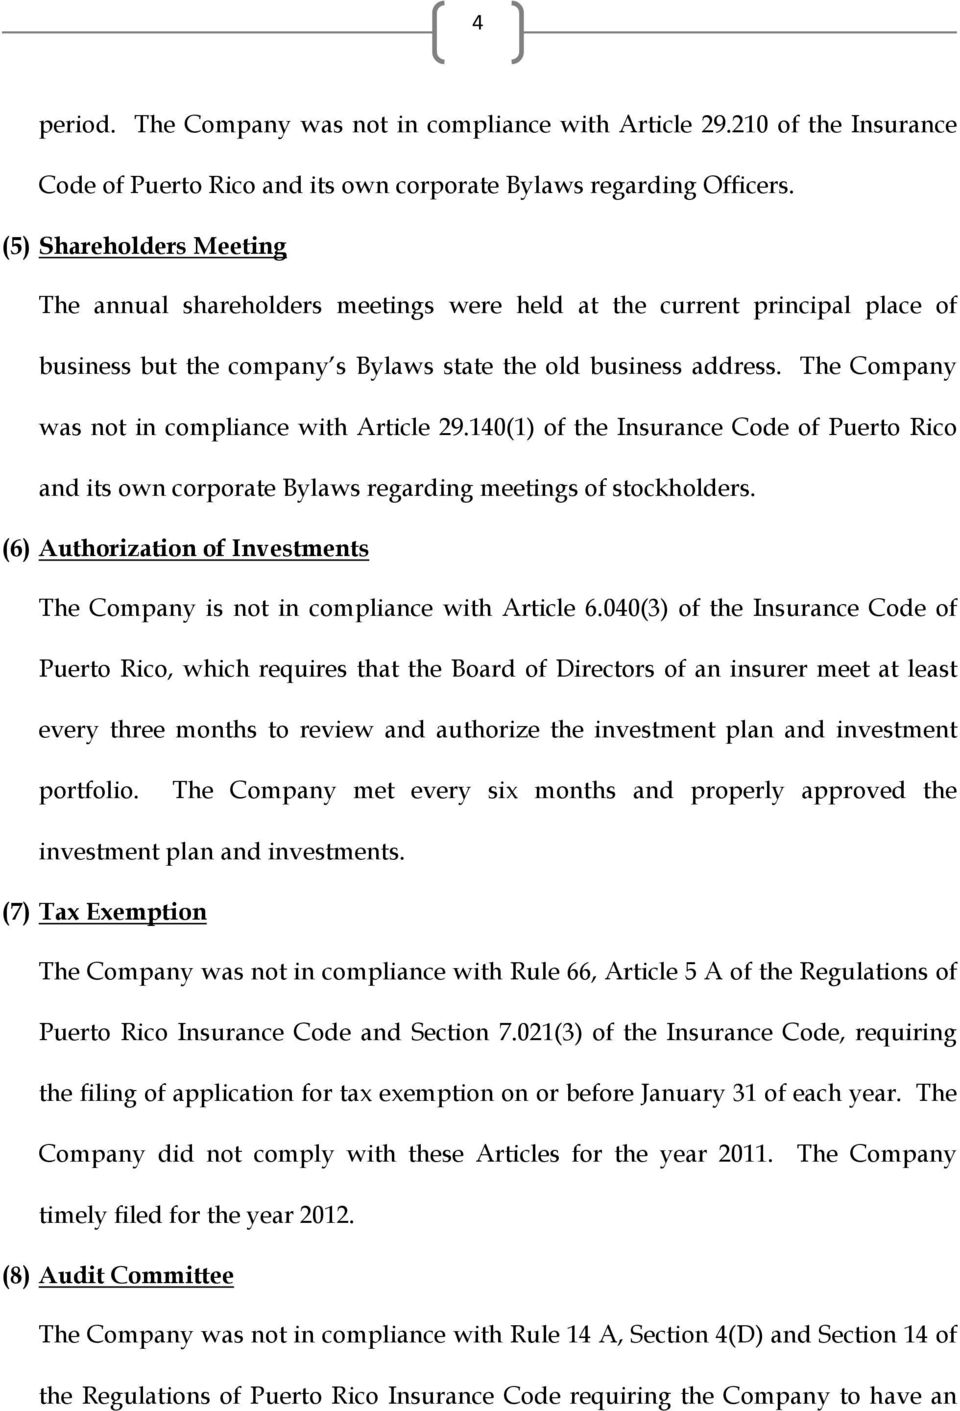 The Company was not in compliance with Article 29.140(1) of the Insurance Code of Puerto Rico and its own corporate Bylaws regarding meetings of stockholders.